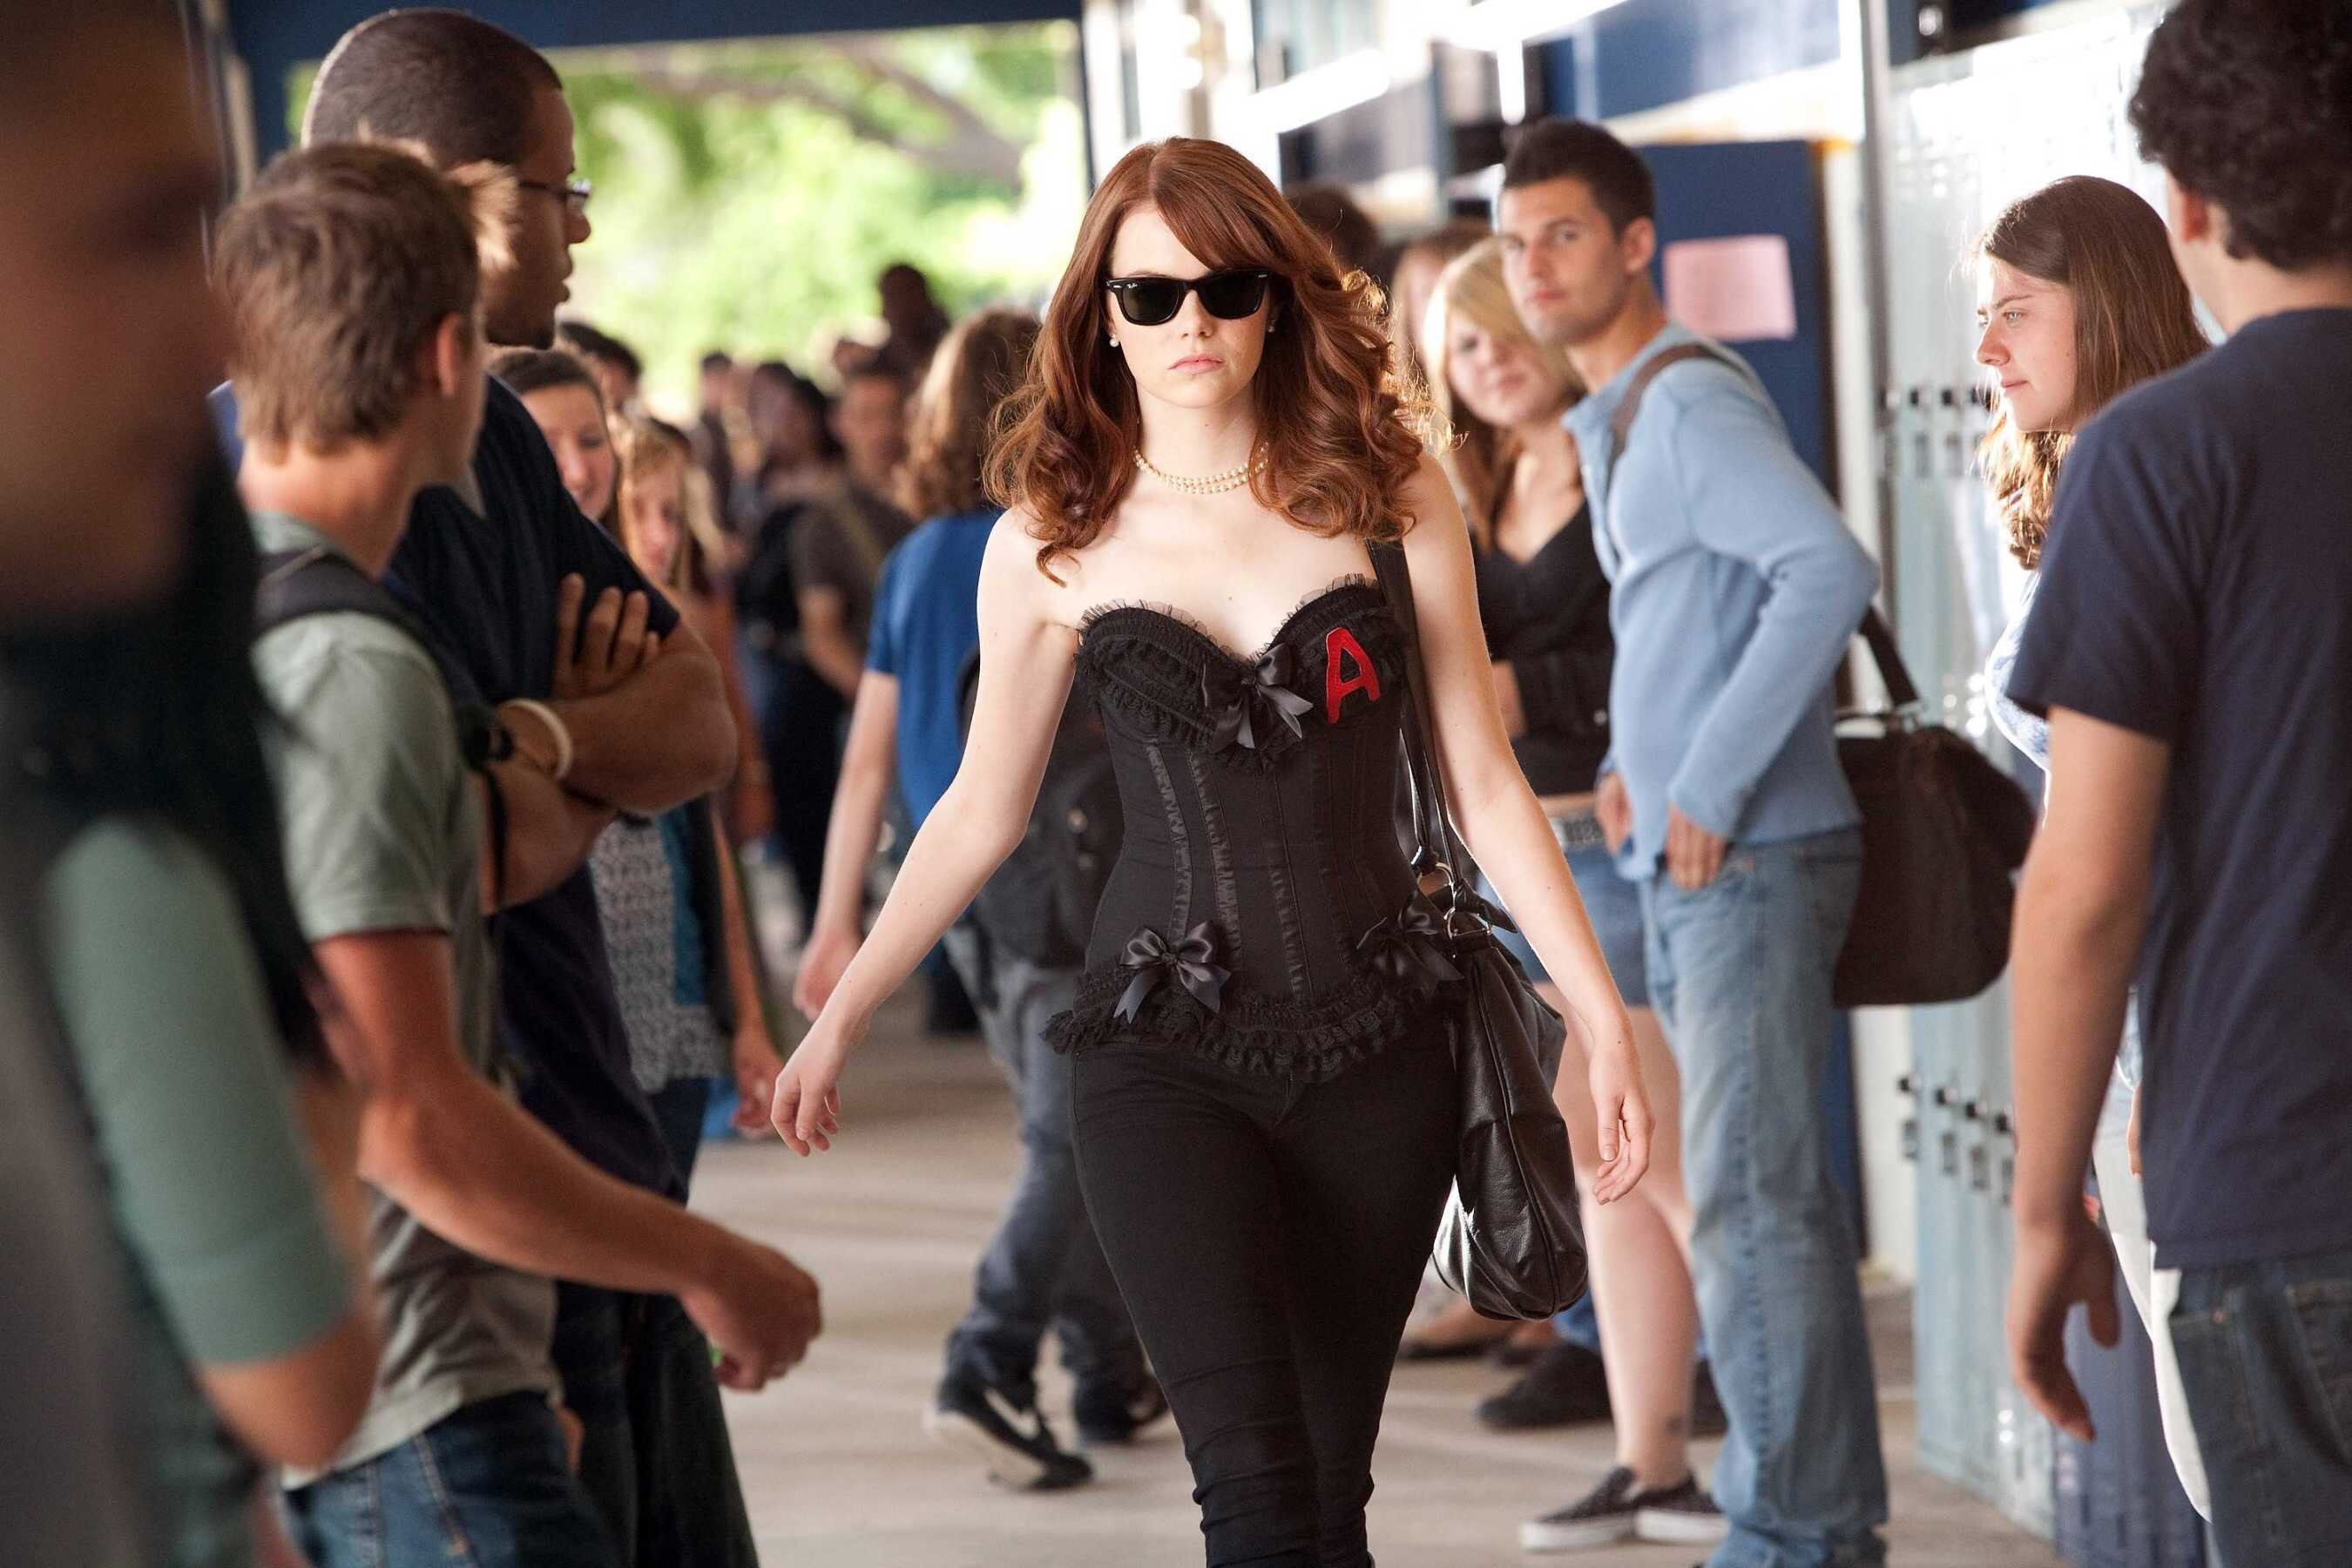 Emma Stone walking through high school wearing jeans, sunglasses and a black corset labelled with a red A